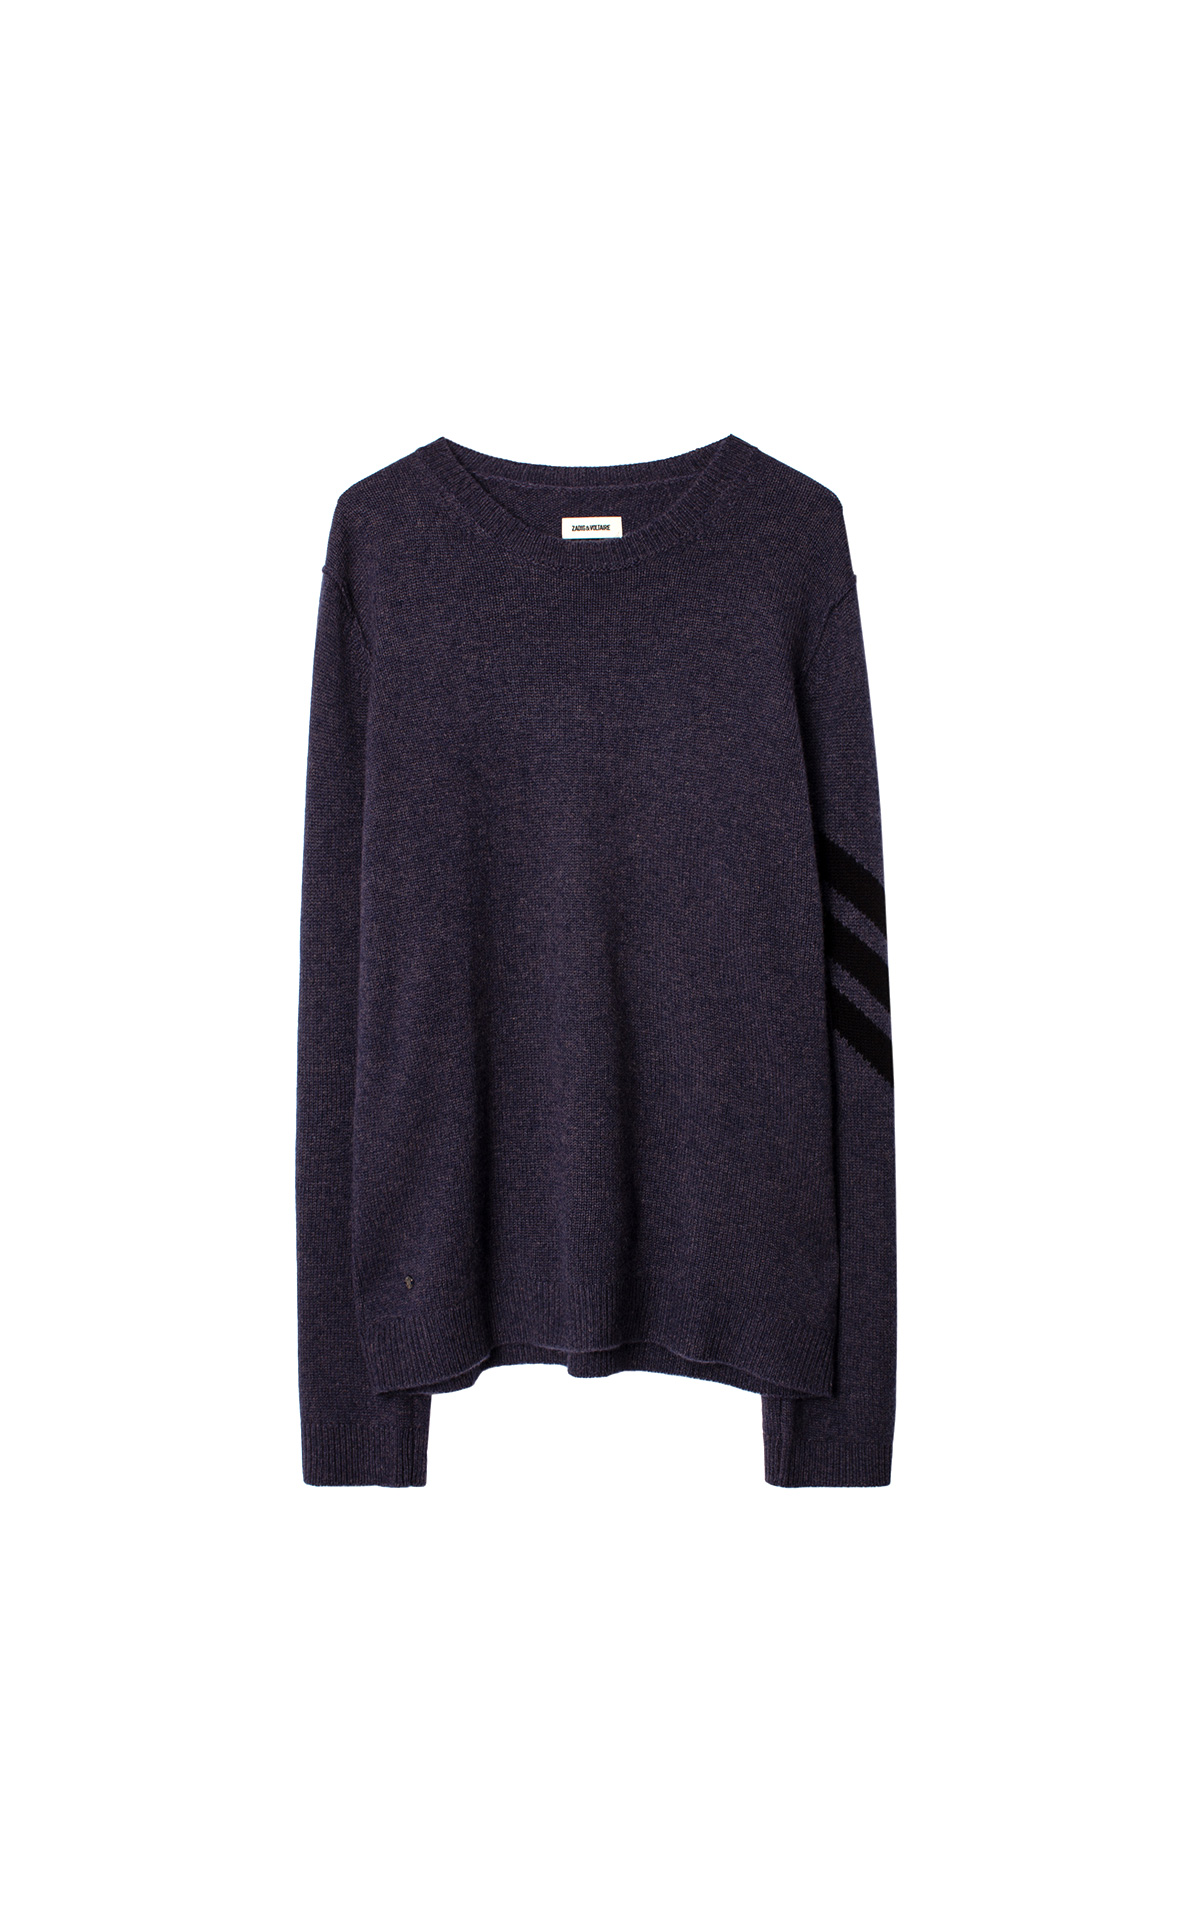 la vallée village zadig and voltaire Kennedy cashmere sweater